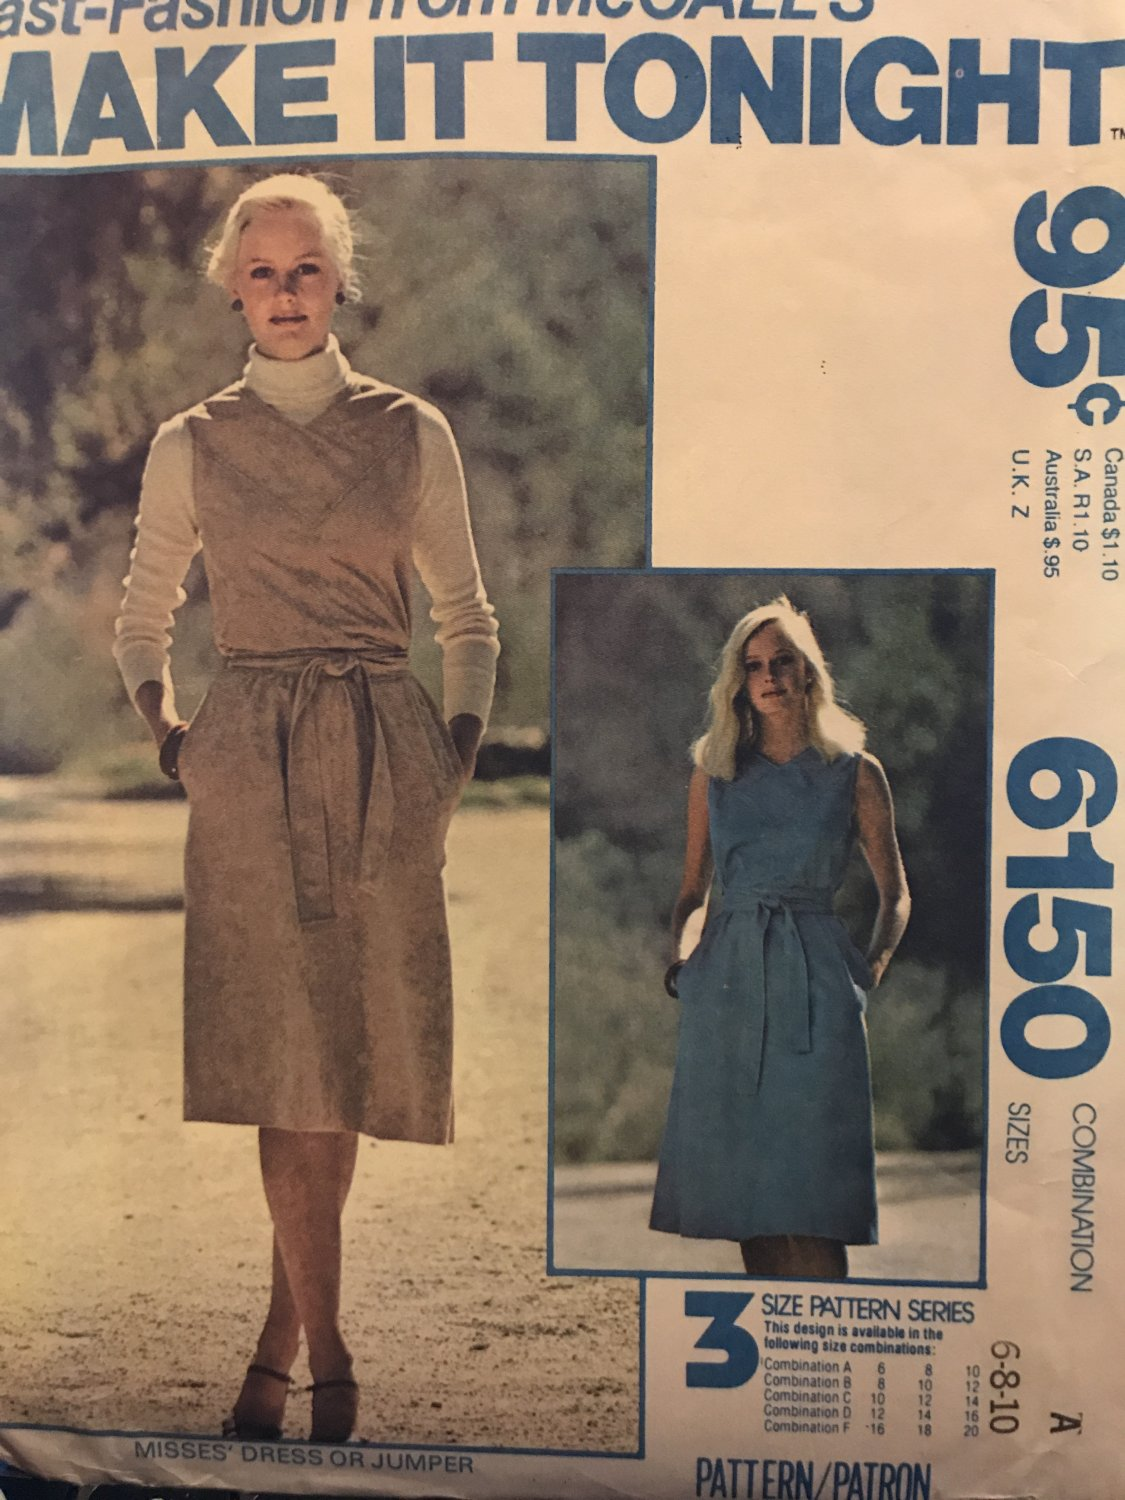 McCall's 6150 Make it Tonight - Misses' Sleeveless Dress or Jumper Sewing Pattern size 6 8 10